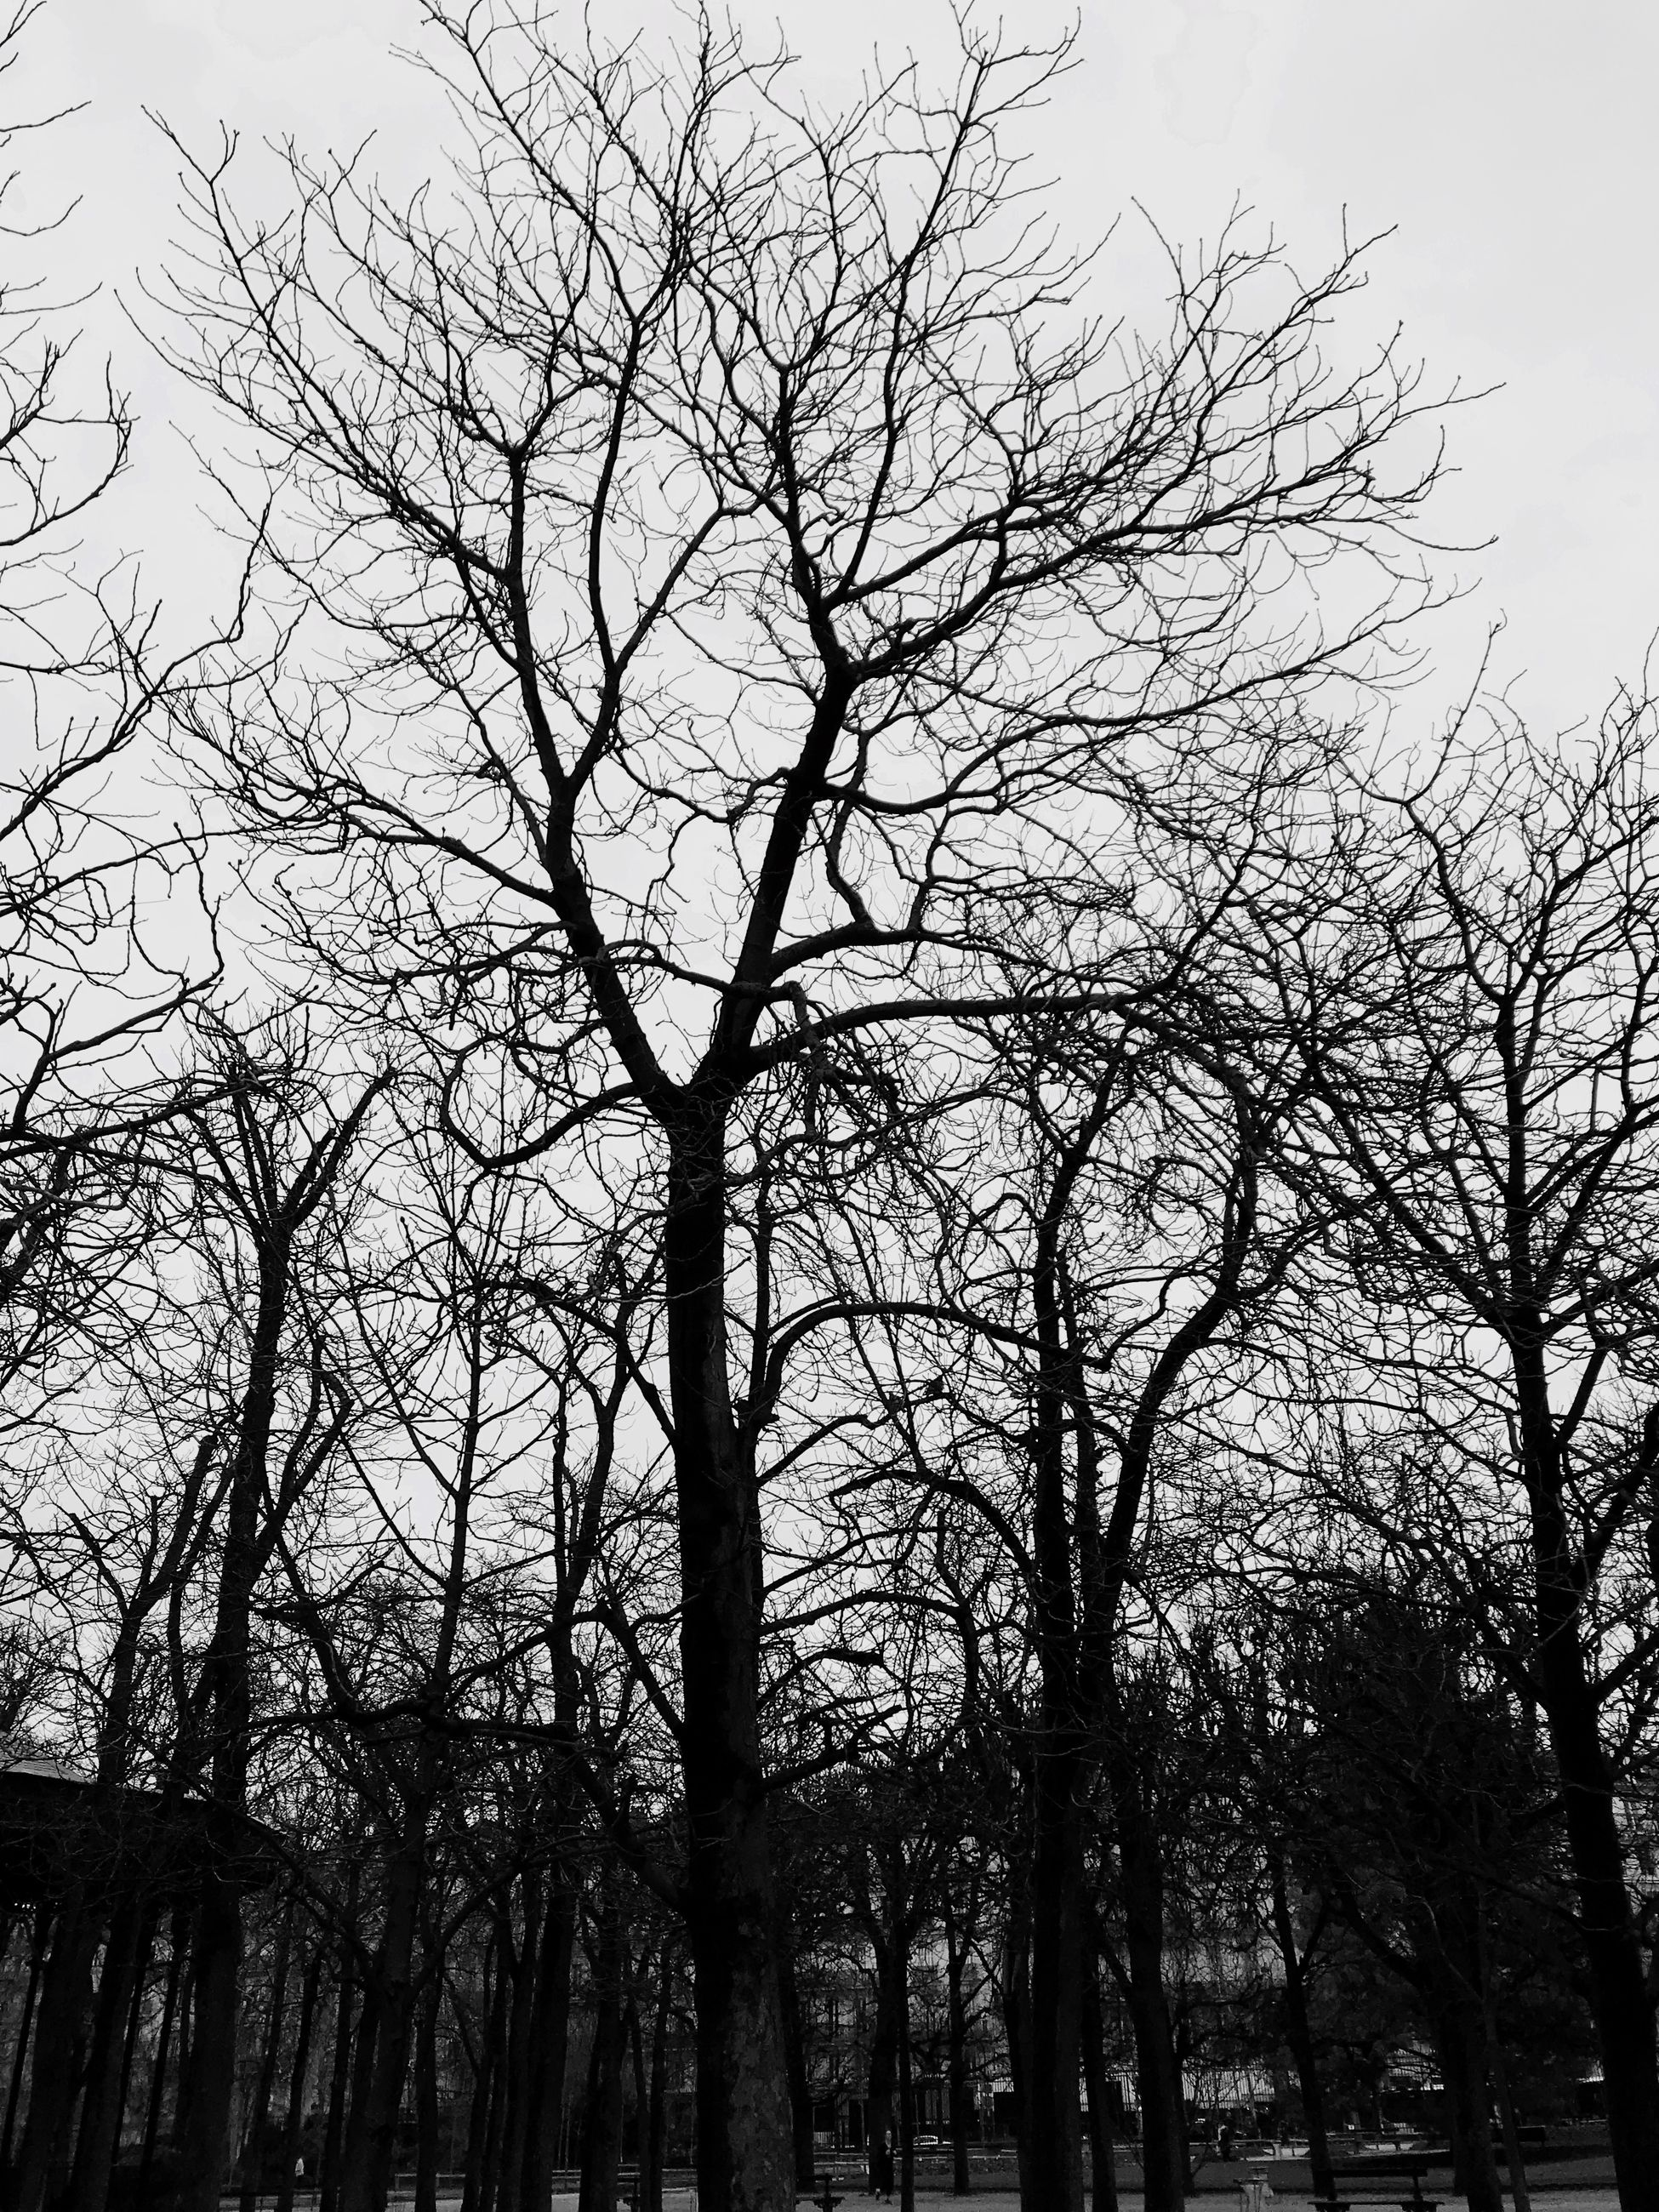 tree, bare tree, low angle view, branch, outdoors, no people, nature, day, tranquility, tree trunk, sky, beauty in nature